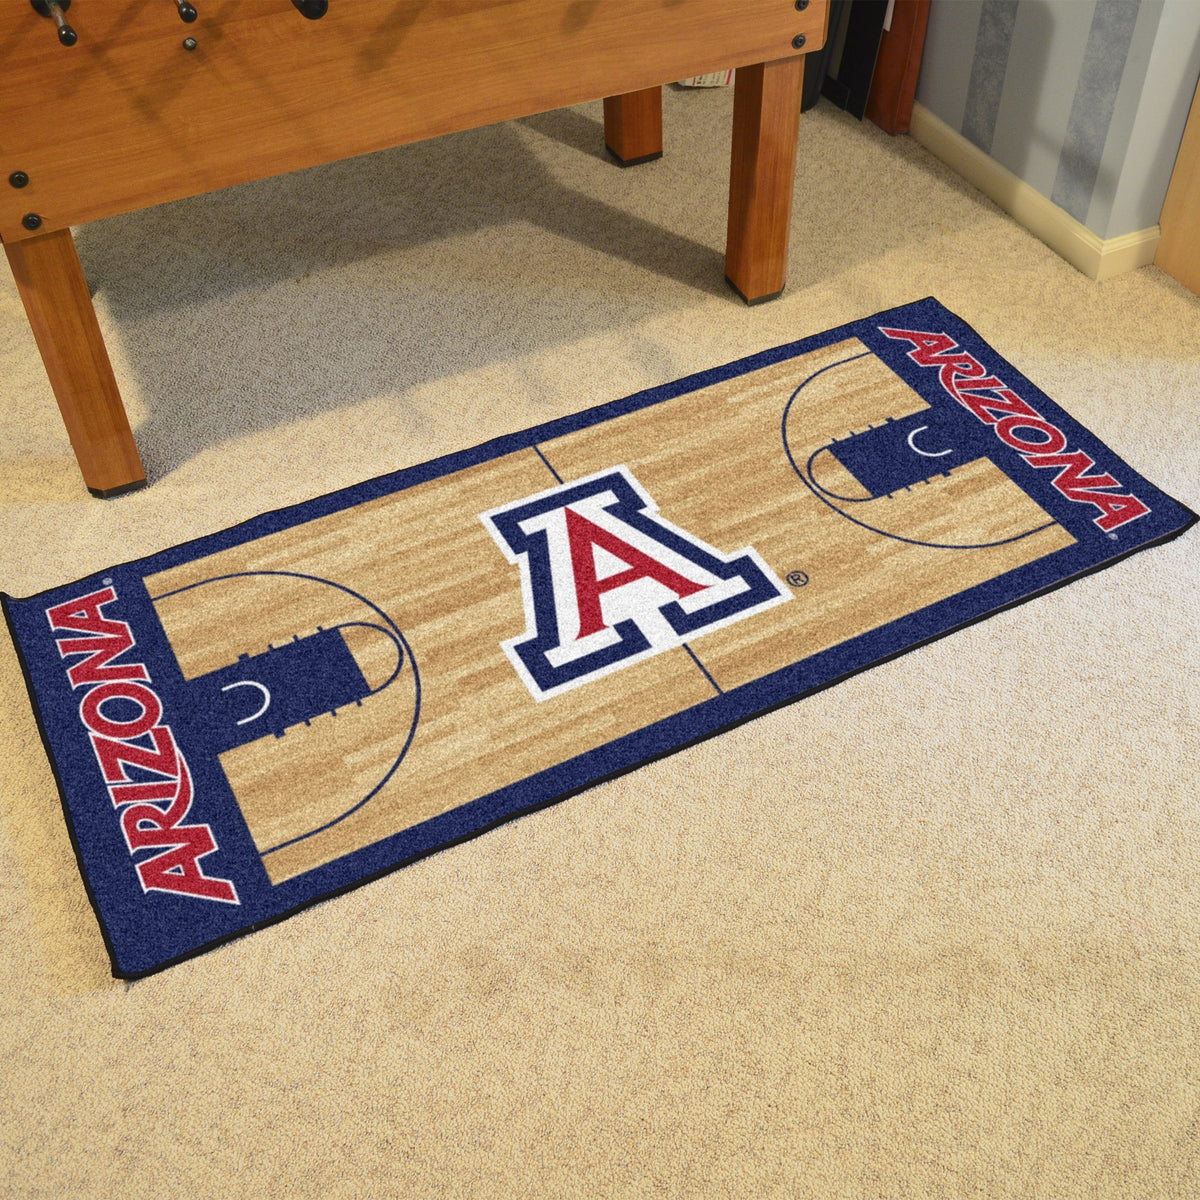 Collegiate - NCAA Basketball Runner Collegiate Mats, Rectangular Mats, NCAA Basketball Runner, Collegiate, Home Fan Mats Arizona